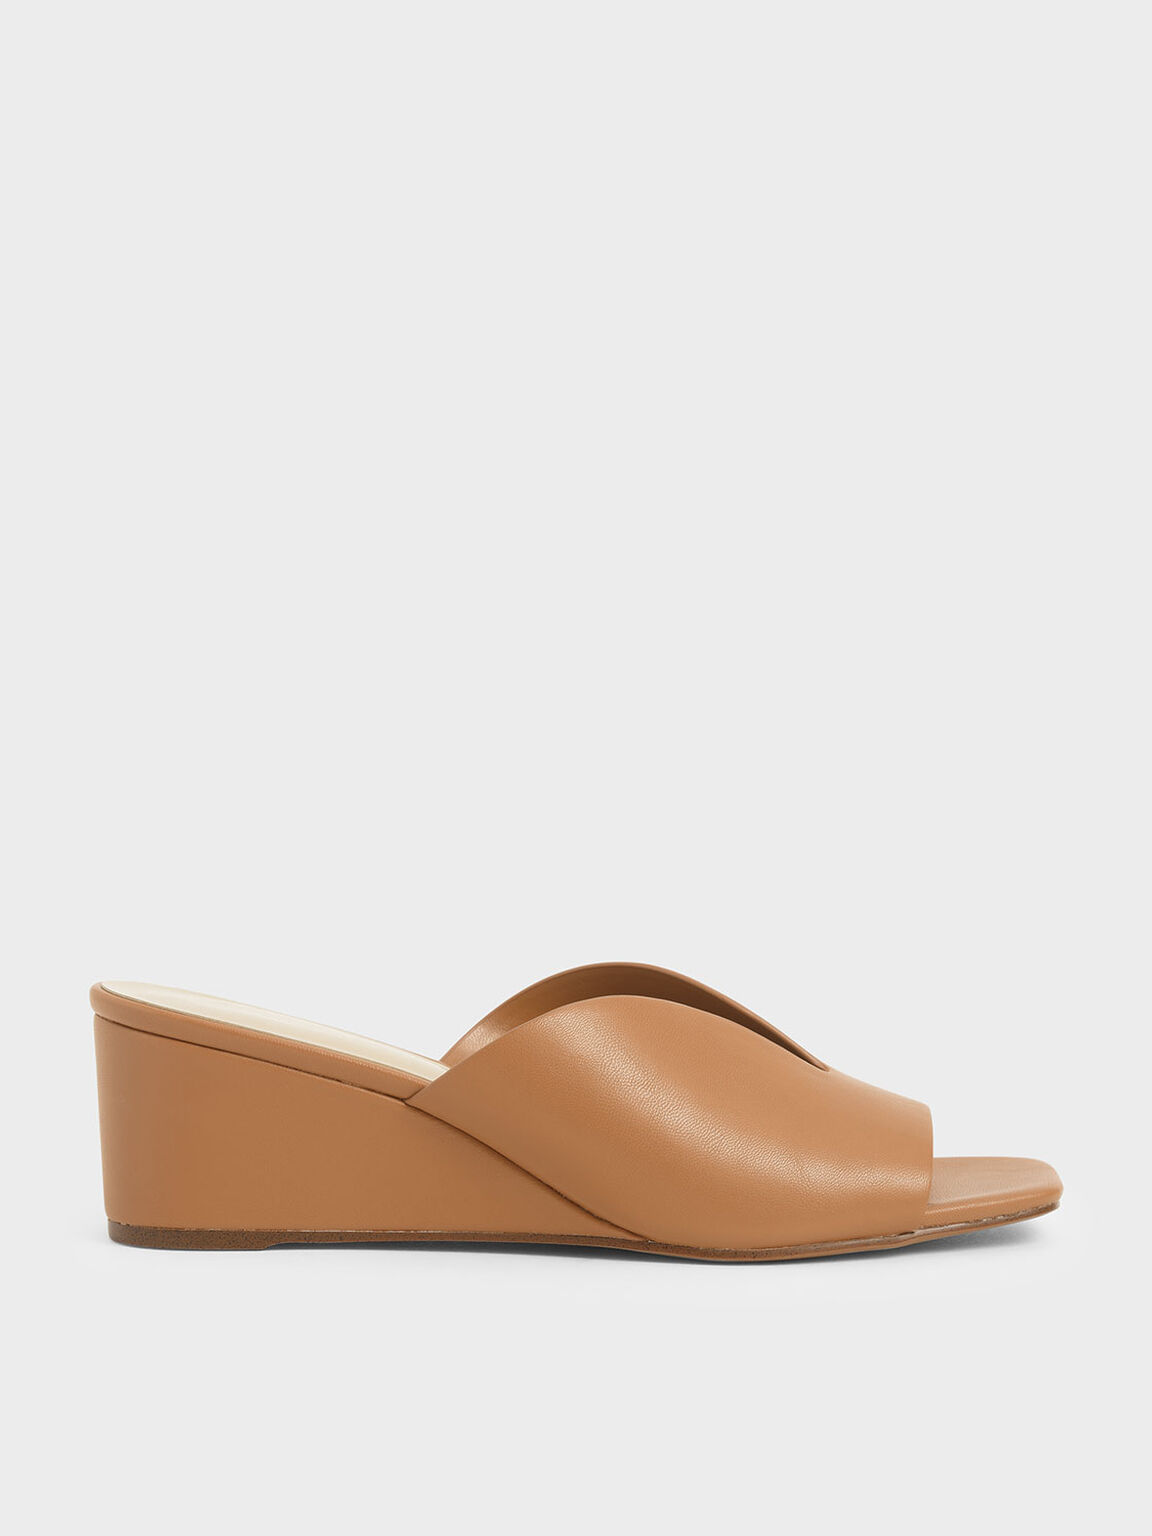 V-Cut Wedges, Brown, hi-res